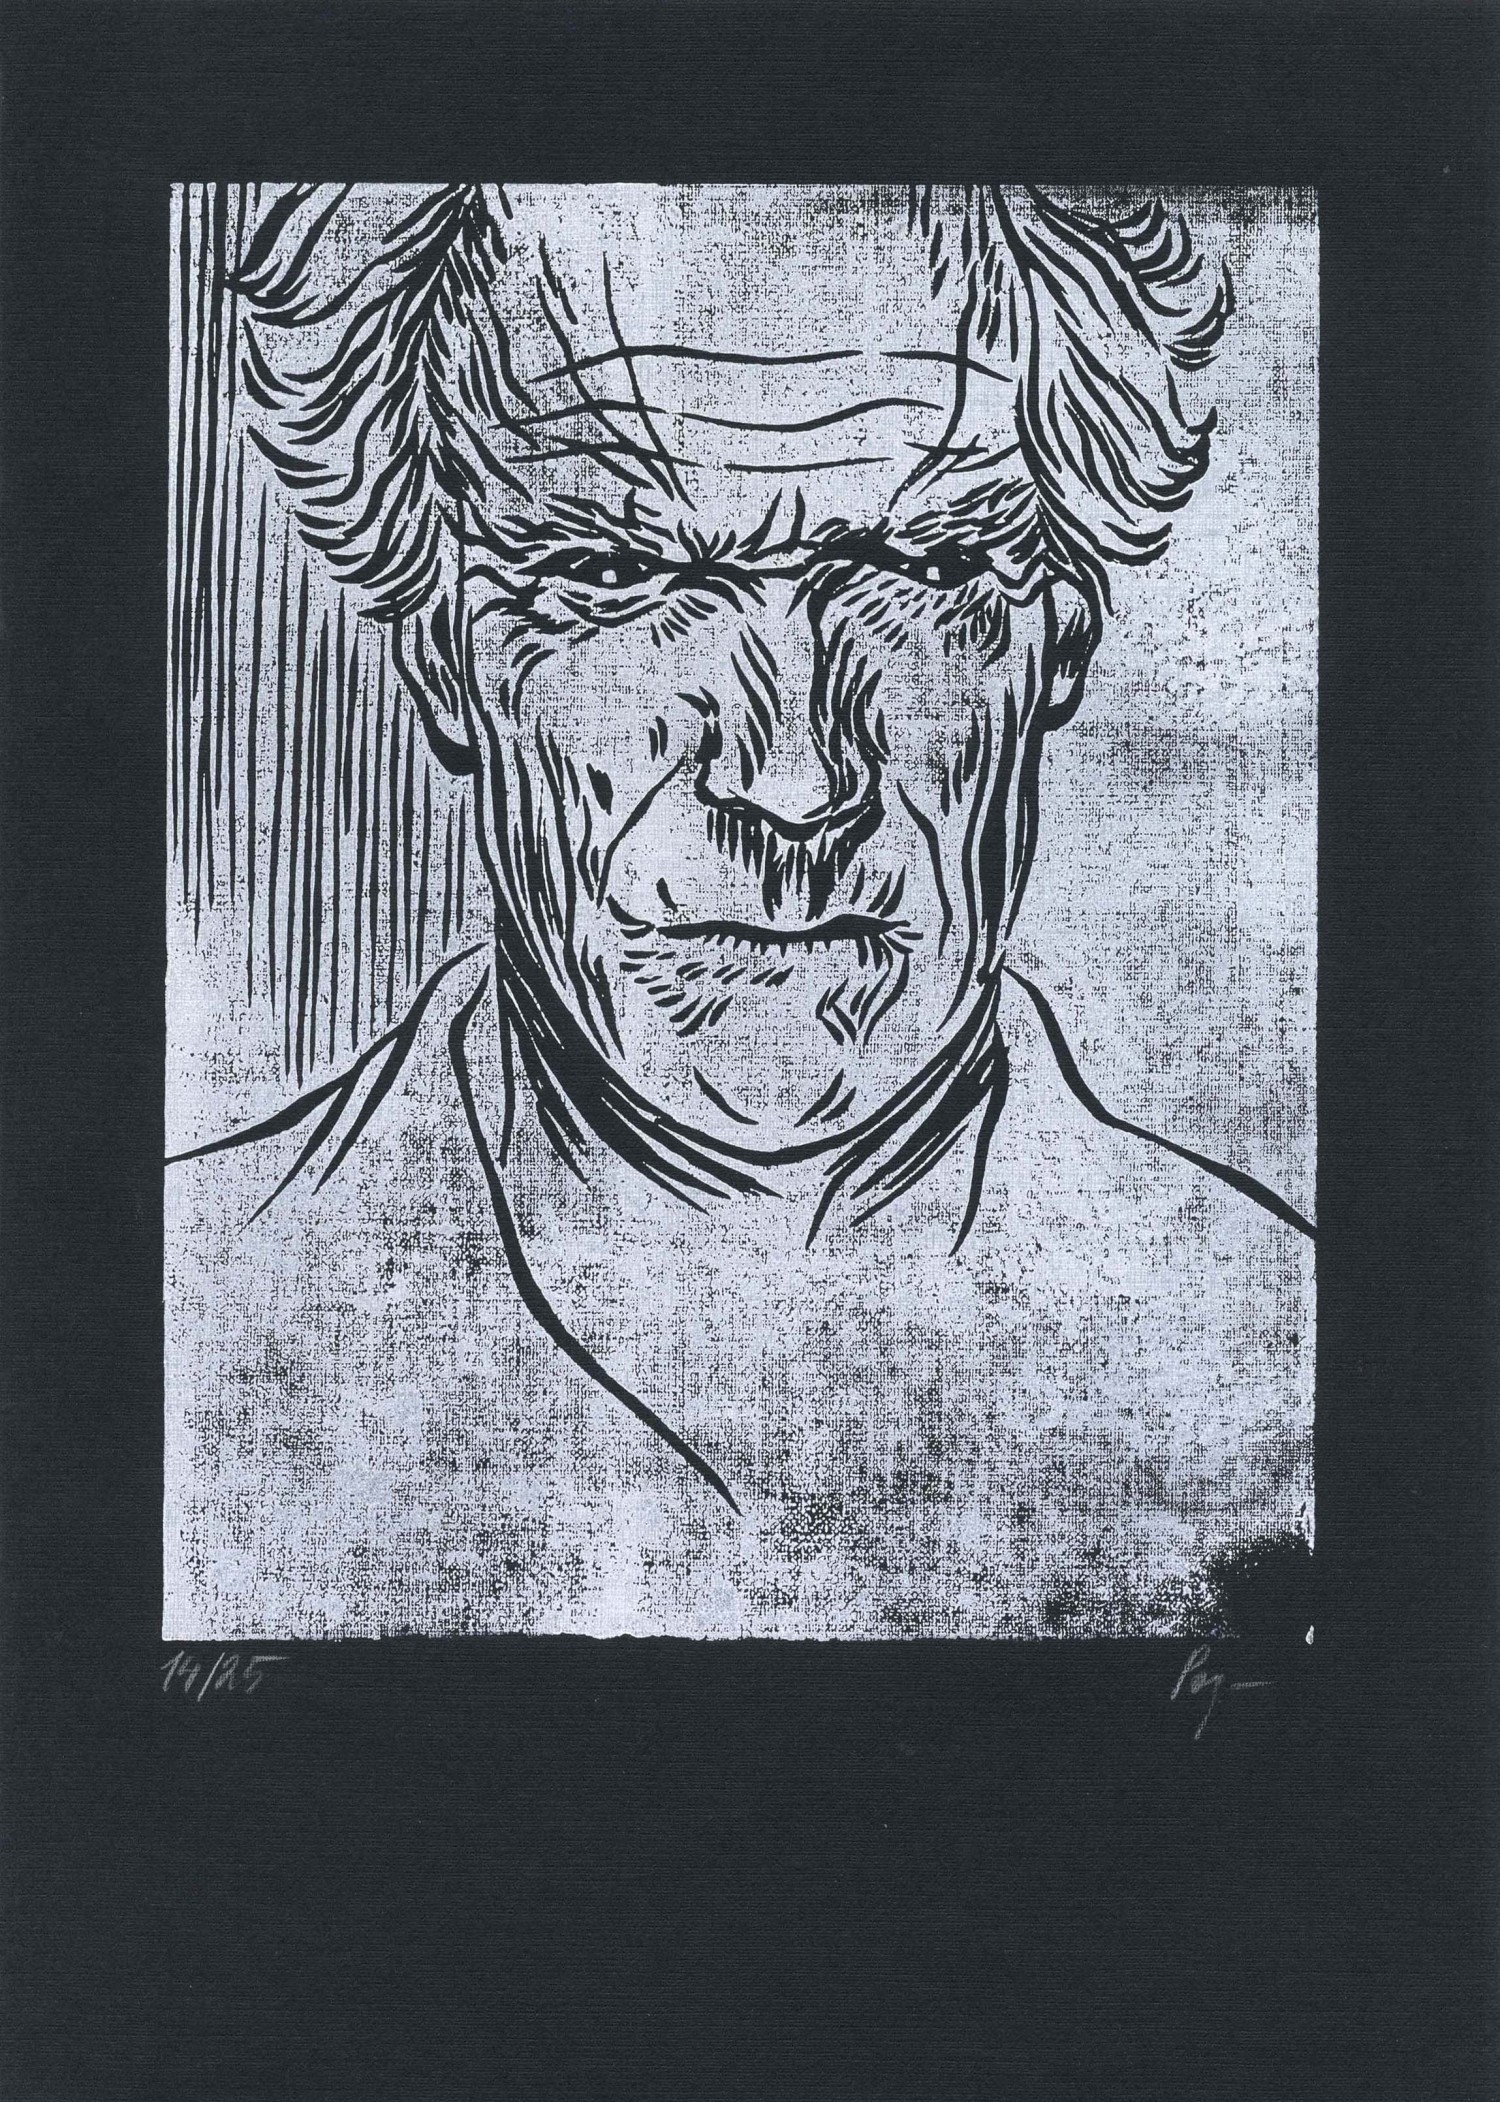 """Mr. Eastwood"" by Anna Rosliakova.  11,7"" x 16,41"" Linocut.  Ed of 25 S/N."